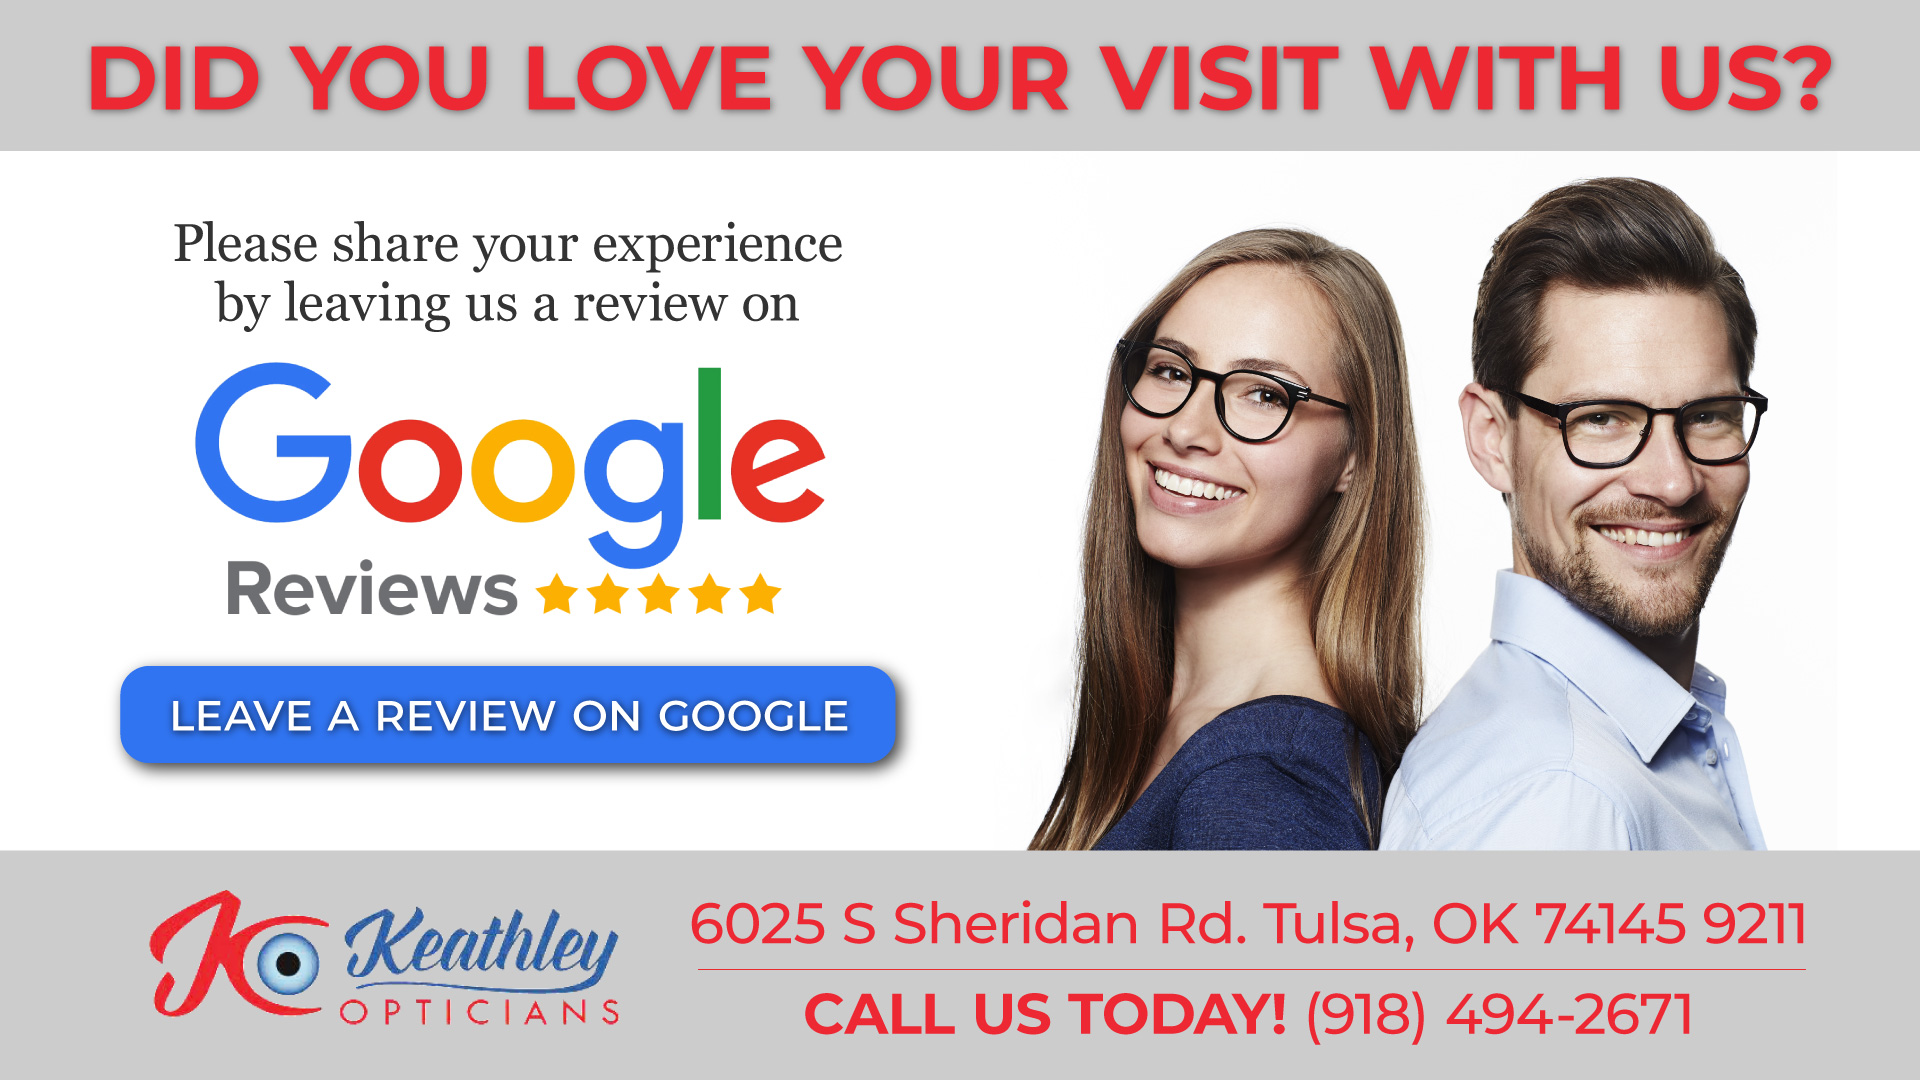 Review Us in Tulsa, OK - Keathley Opticians